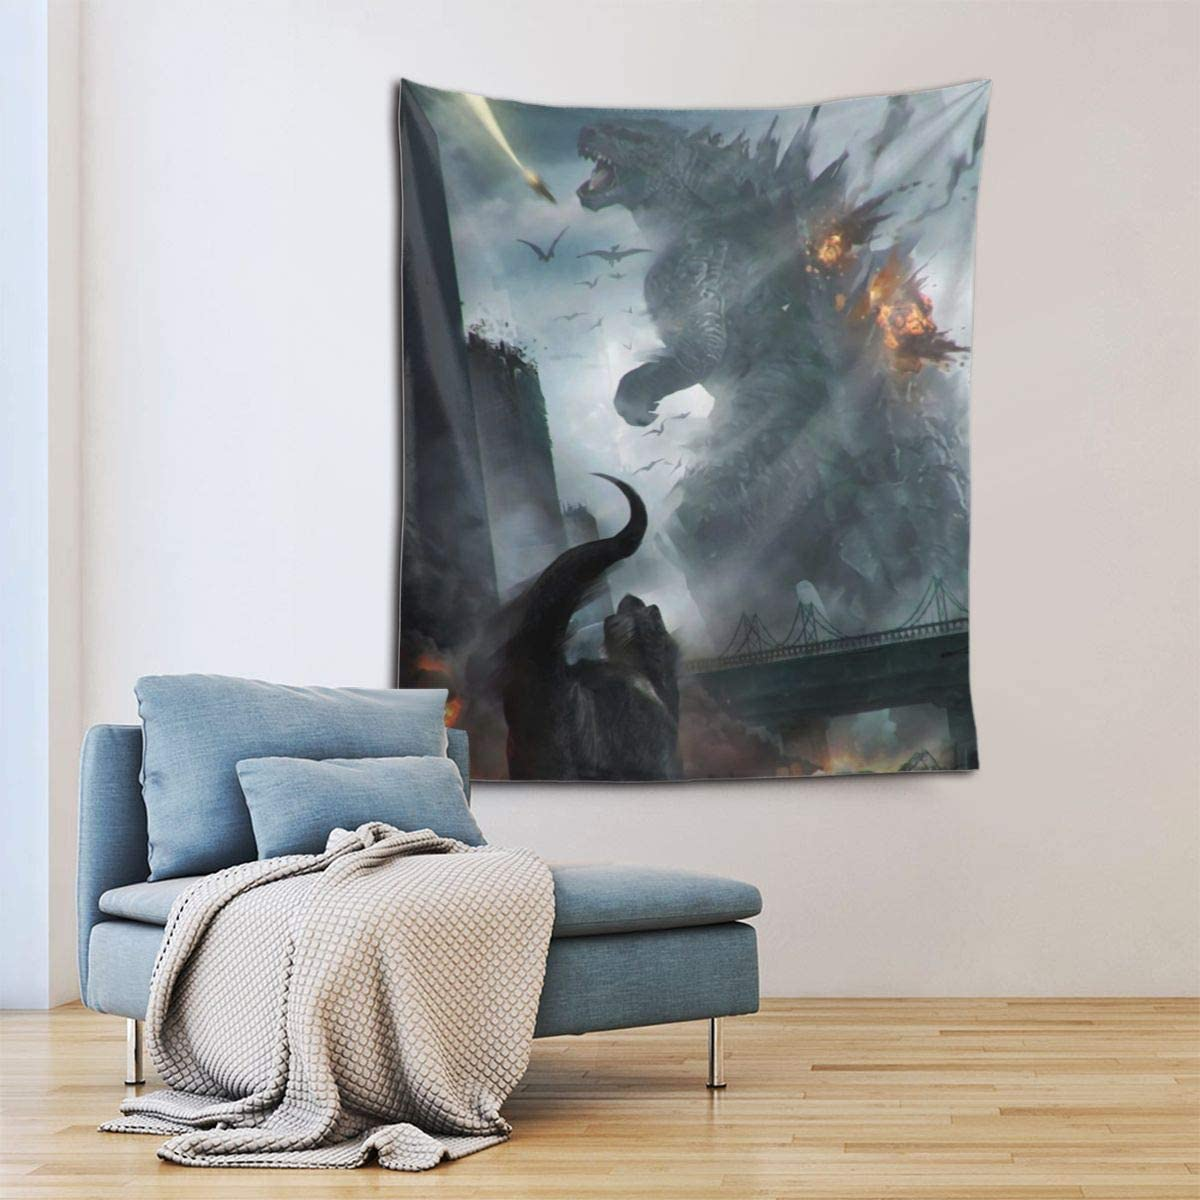 Little Monster Godzilla Attack Tyrannosaurus Rex Prints Tapestries Artwork Wall Blanket Tapestry Wall Hanging Wall Art Poster for Dinning Room Party Modern Wall Decor 90x60in 229x152cm